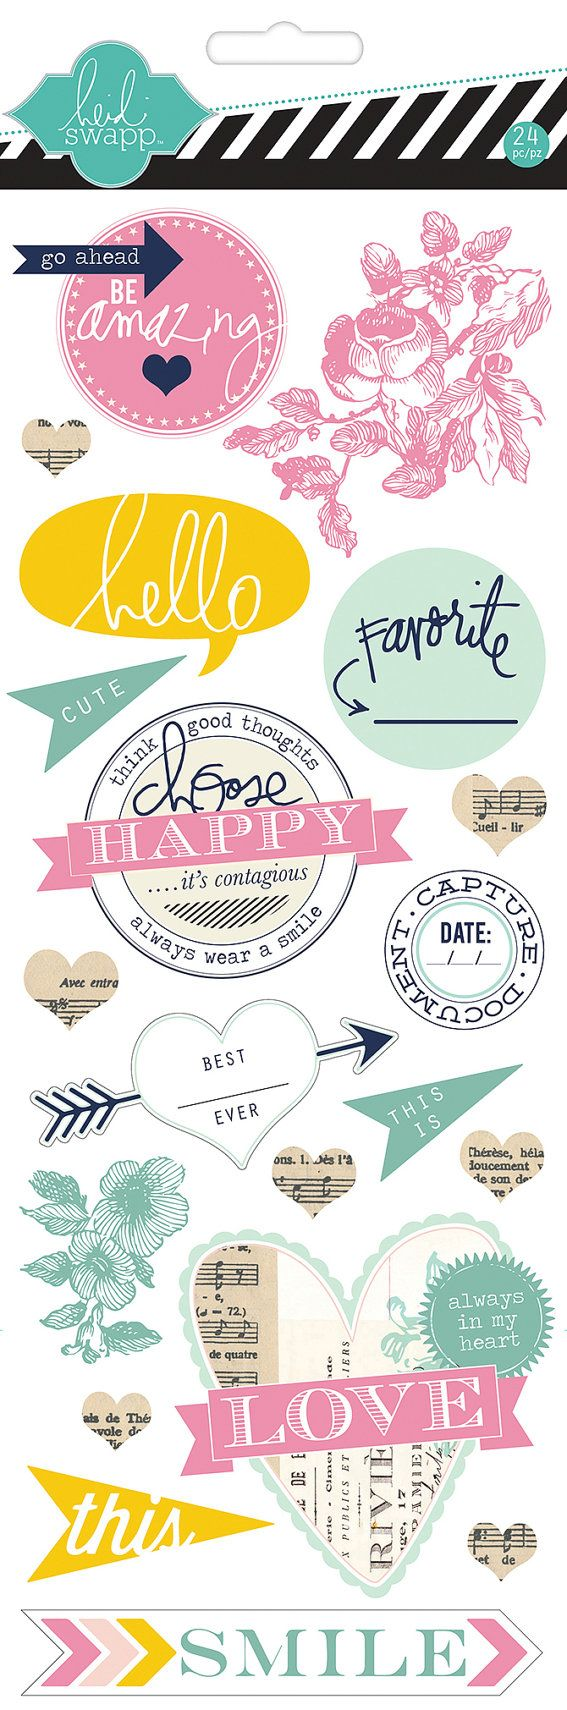 Stickers Chipboard de Heidi Swapp ser feliz